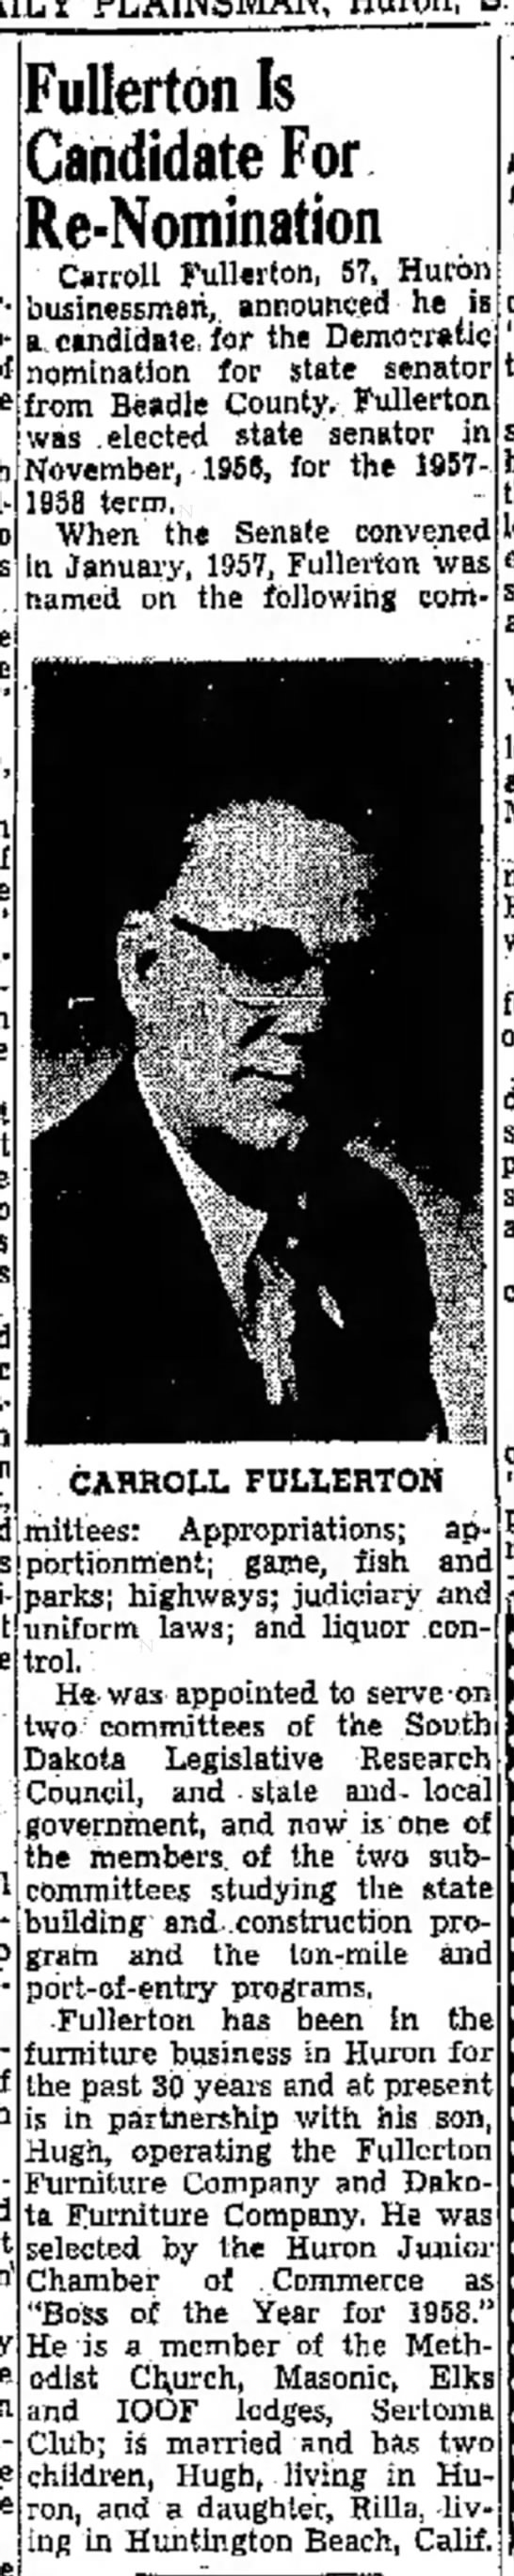 Carroll Fullerton for Re-Nomination - Fuller-ton Is Candidate For Re-Nomination...